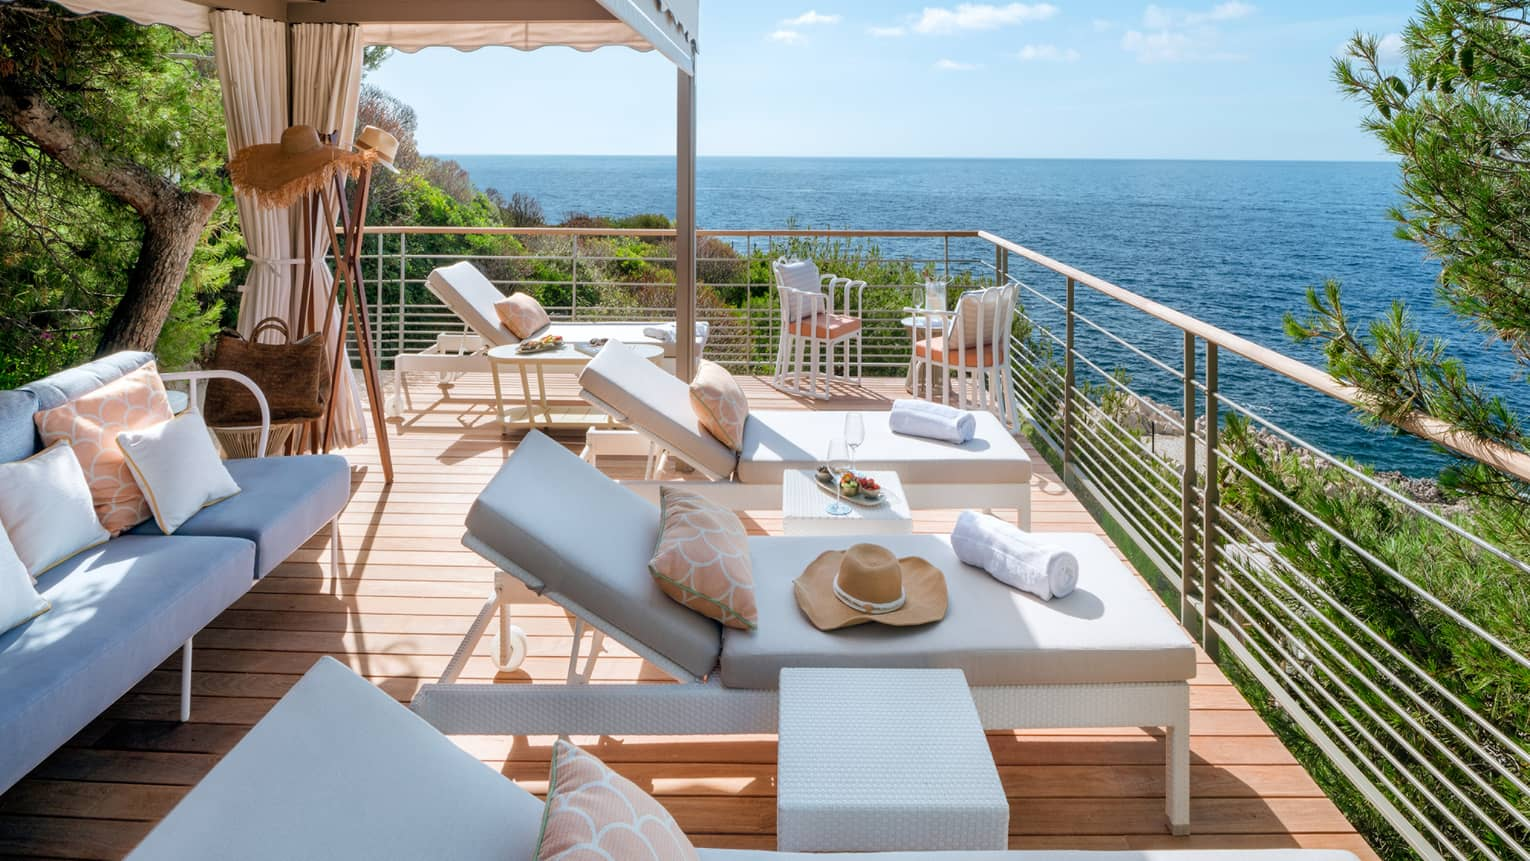 Club Dauphin private cabana terrace with white settee and lounge chairs, sea view